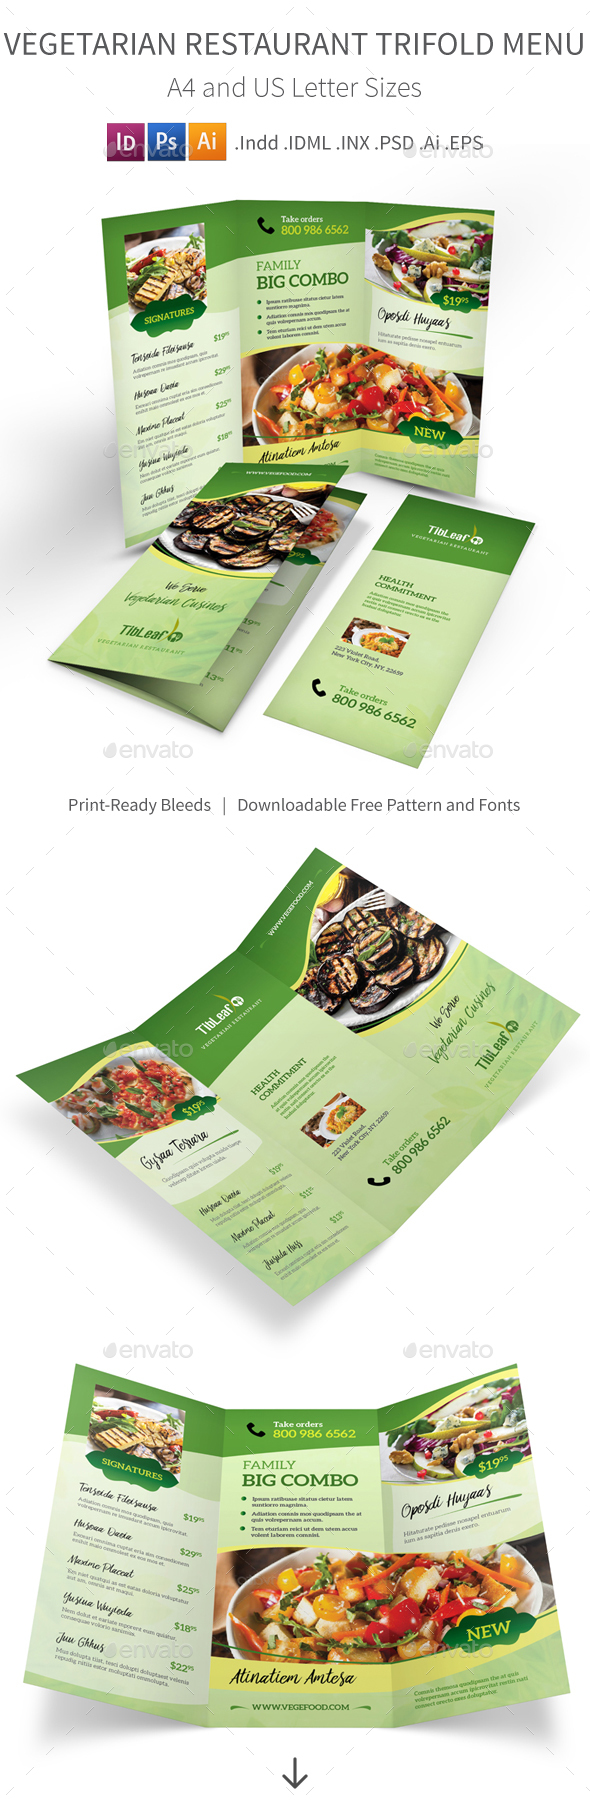 Brochure Templates  Top 25 Free and Paid Options